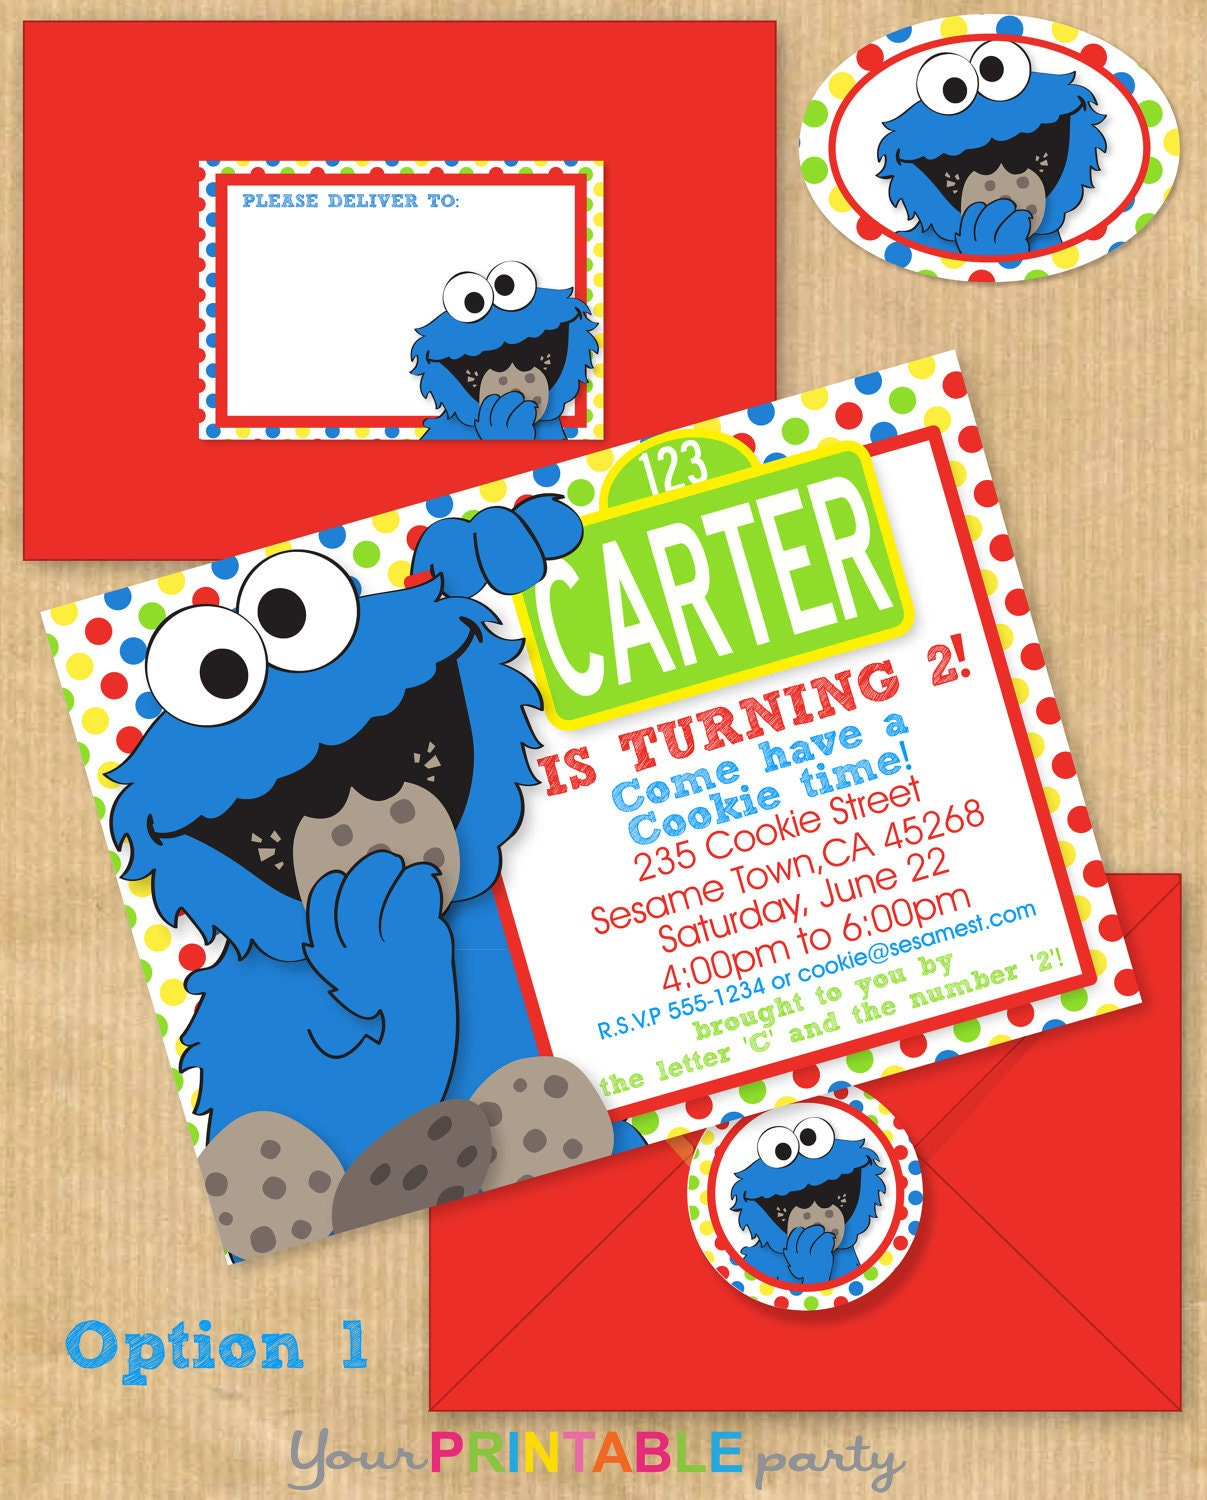 COOKIE MONSTER Party Invitation 5x7 with Address Labels